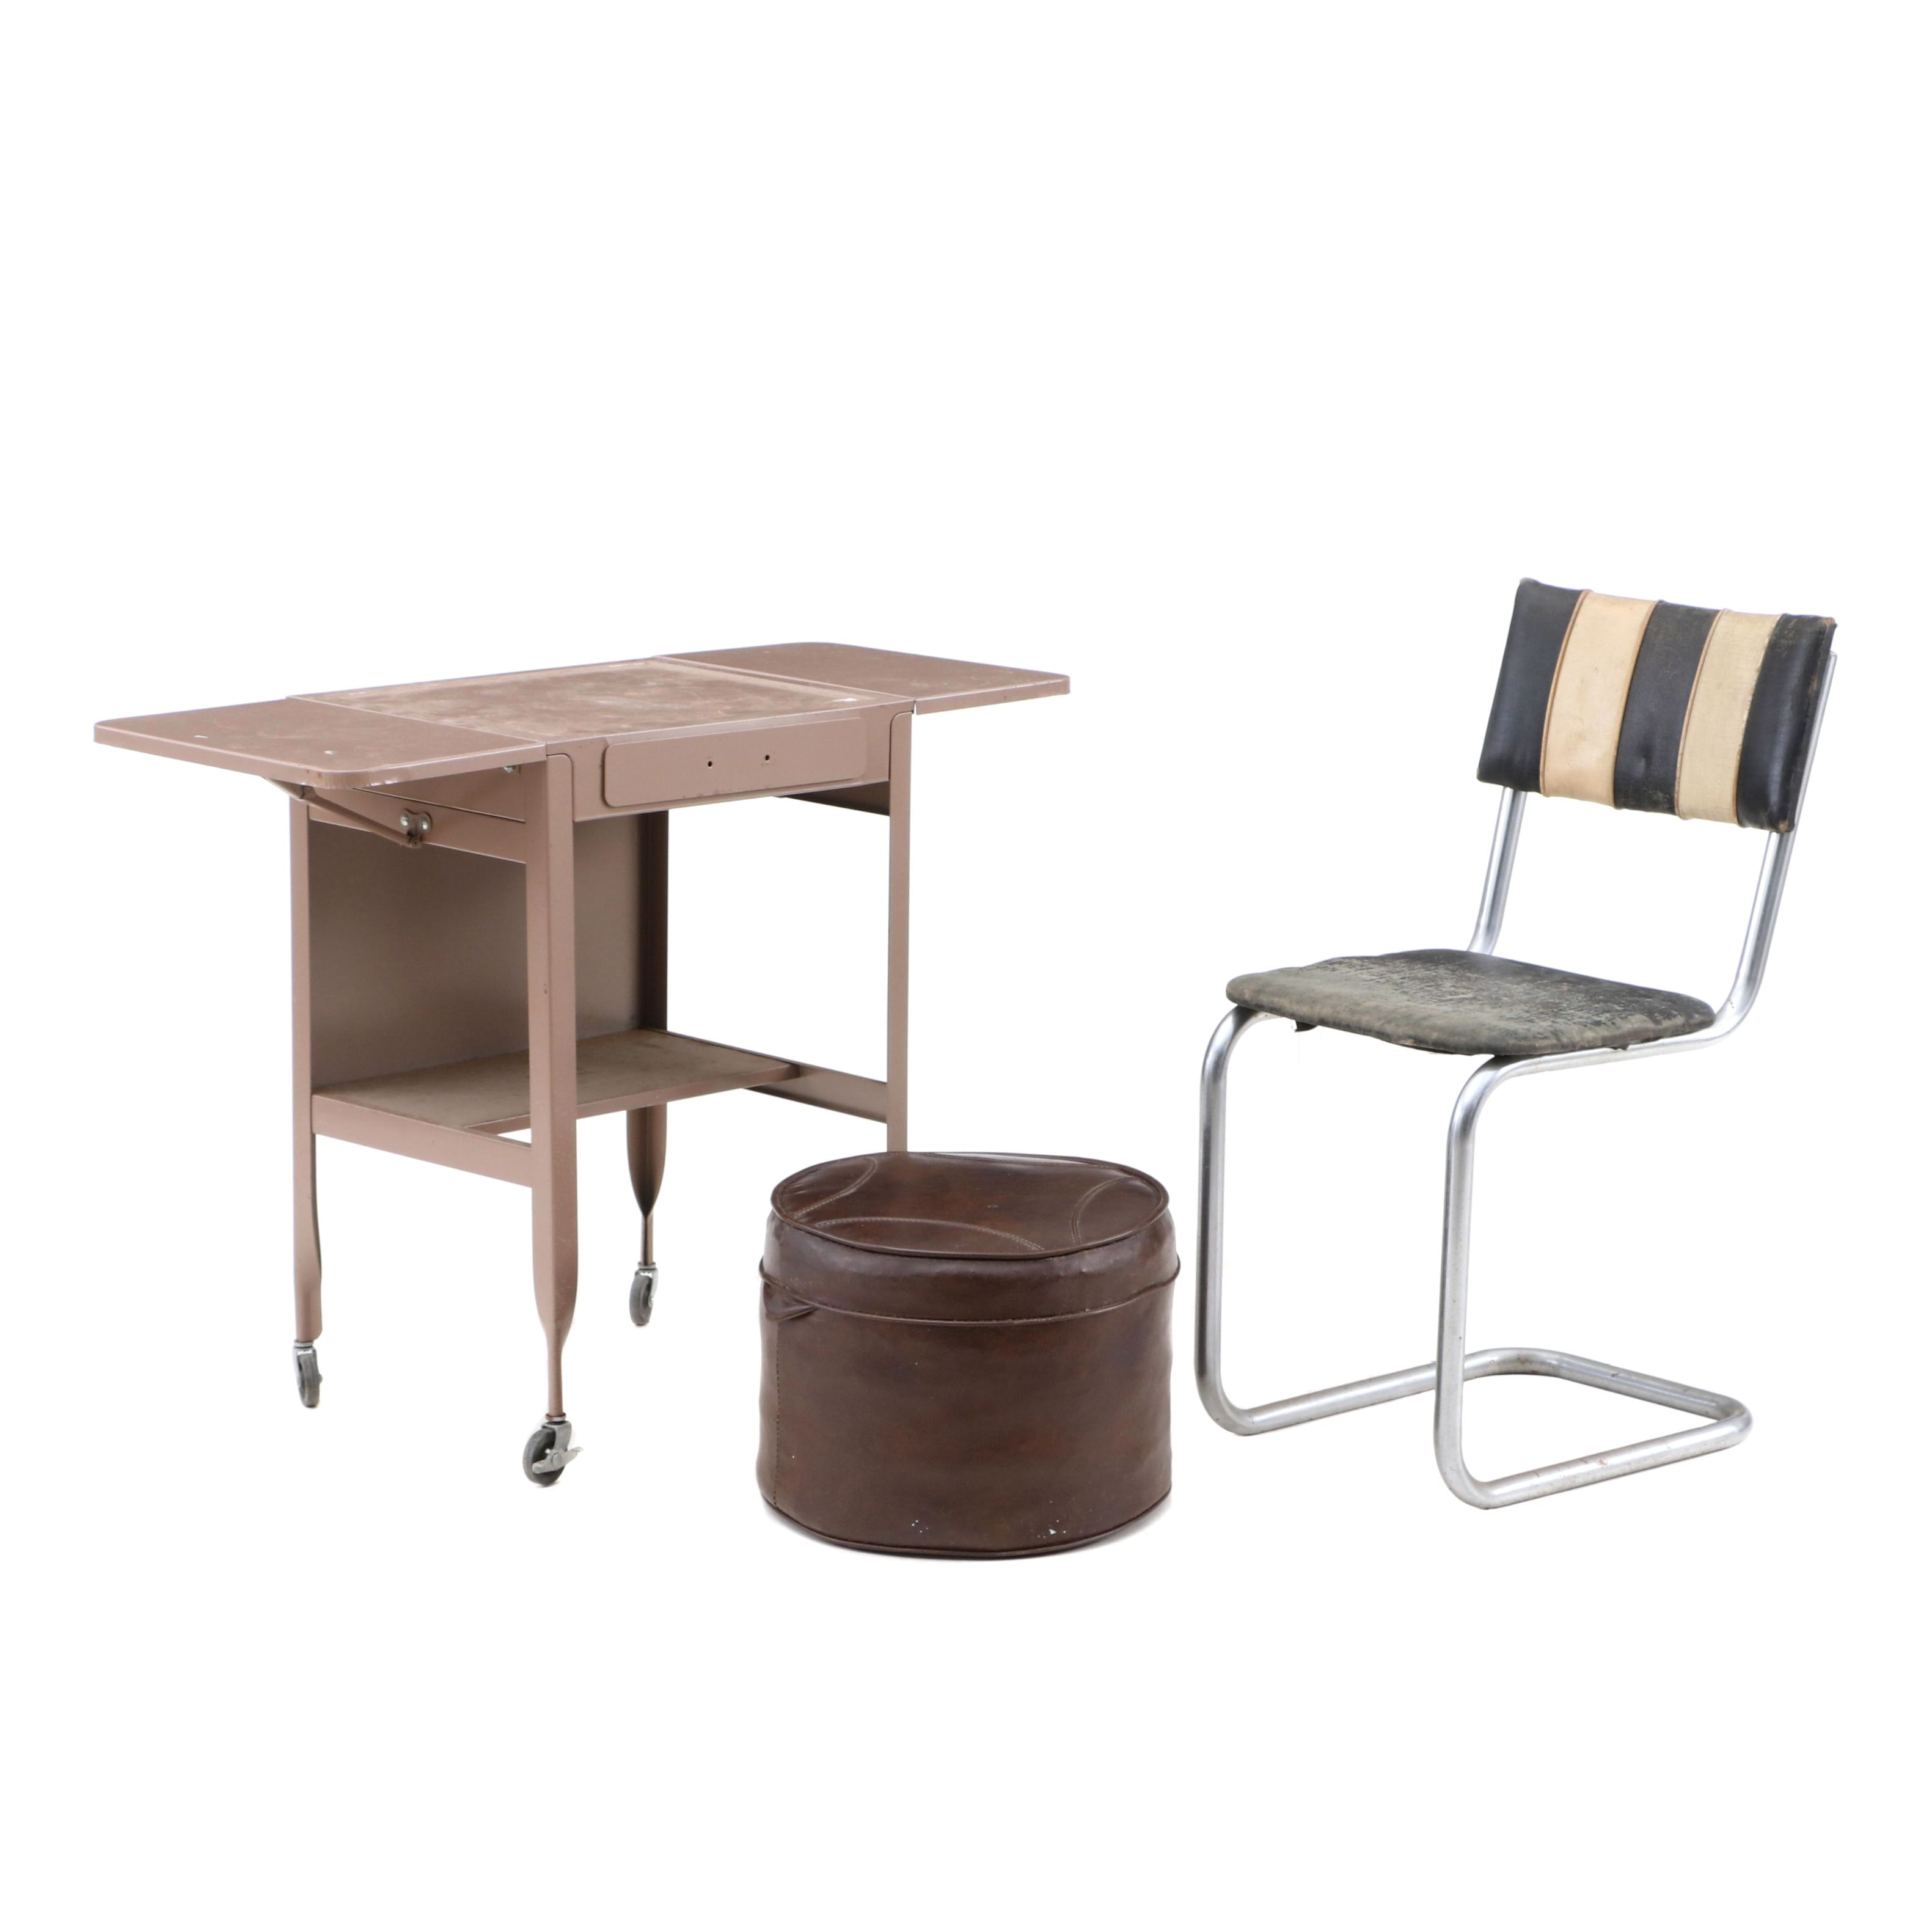 Metal Rolling Cart, Cantilever Chair and Ottoman, 20th Century